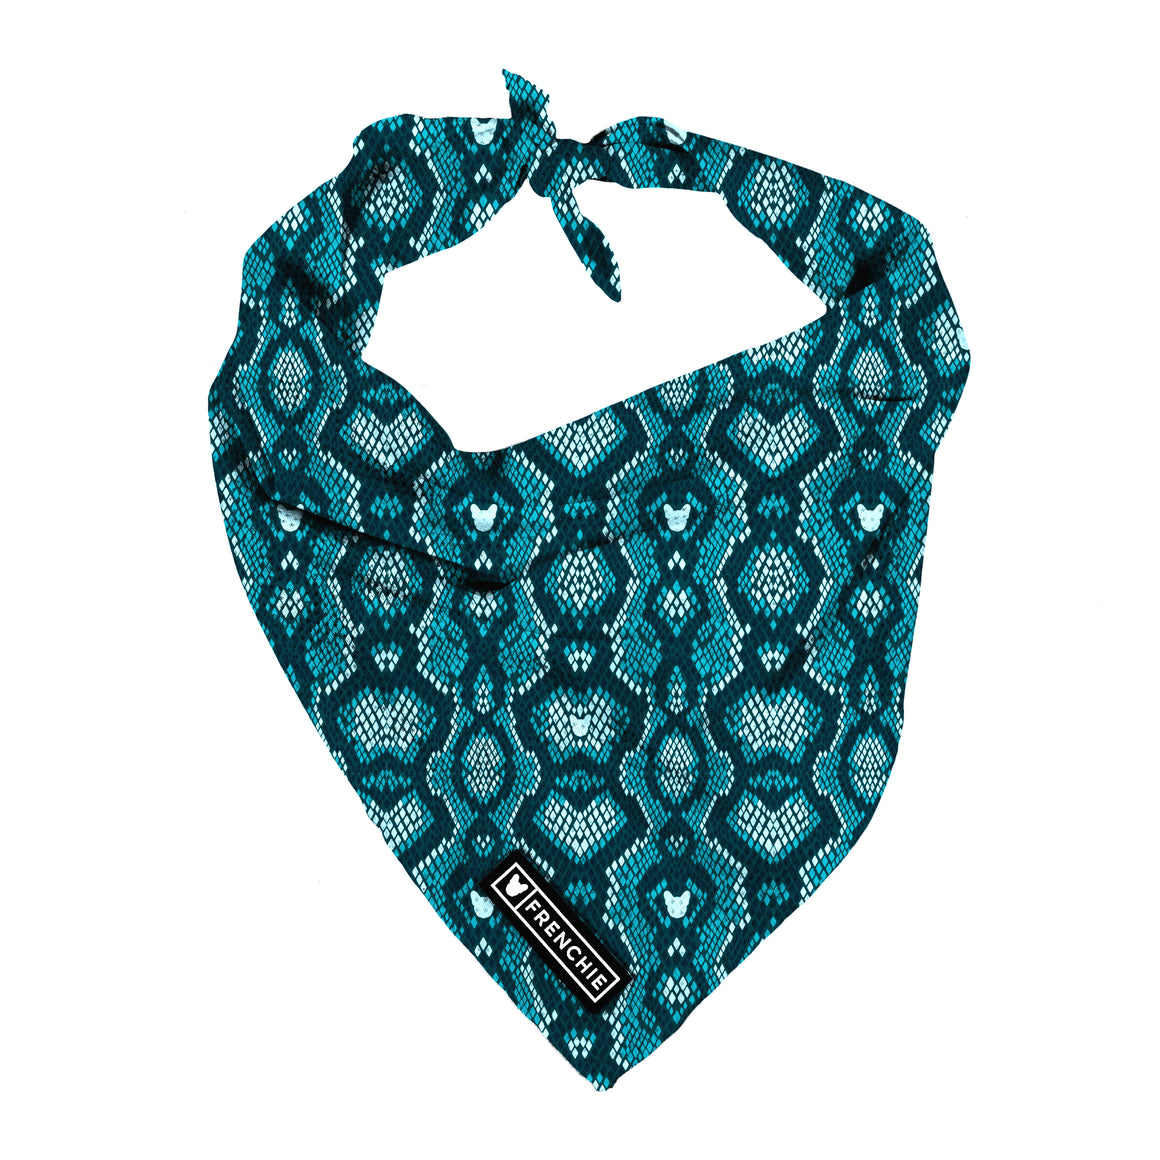 Frenchie Cooling Bandana- Snake Skin - Frenchie Bulldog - Shop Harnesses for French Bulldogs - Shop French Bulldog Harness - Harnesses for Pugs